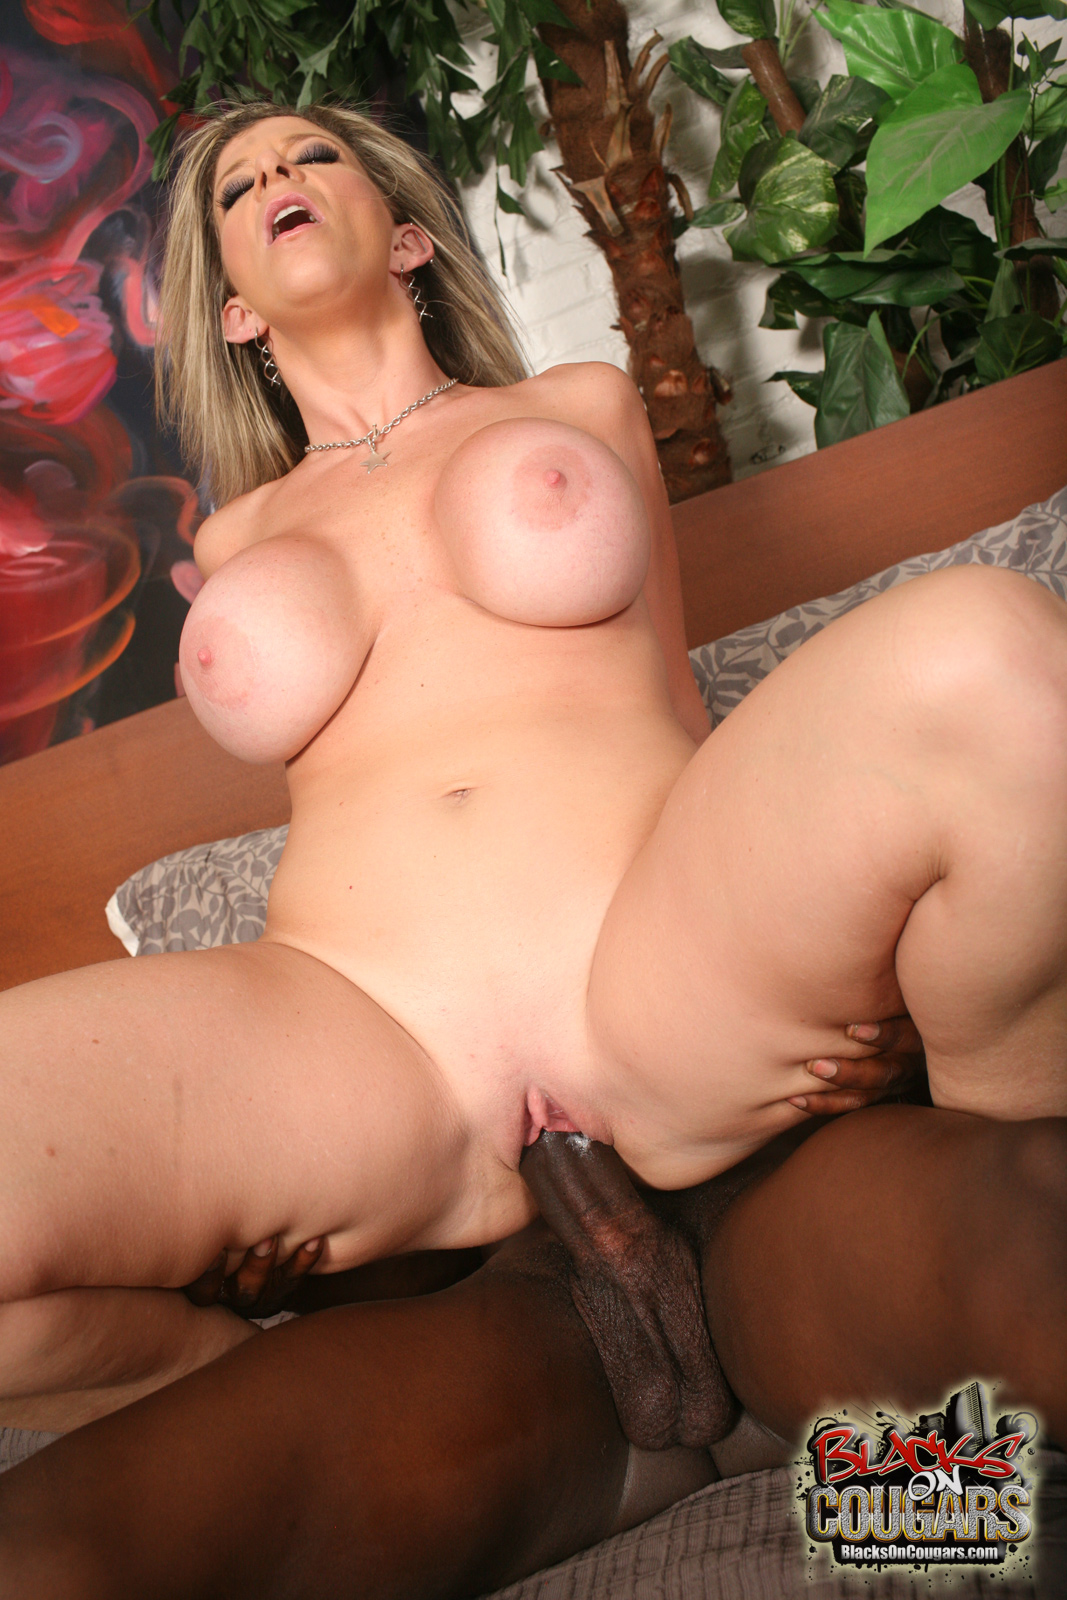 Hot Asian Babe Nailed By Two Guy An